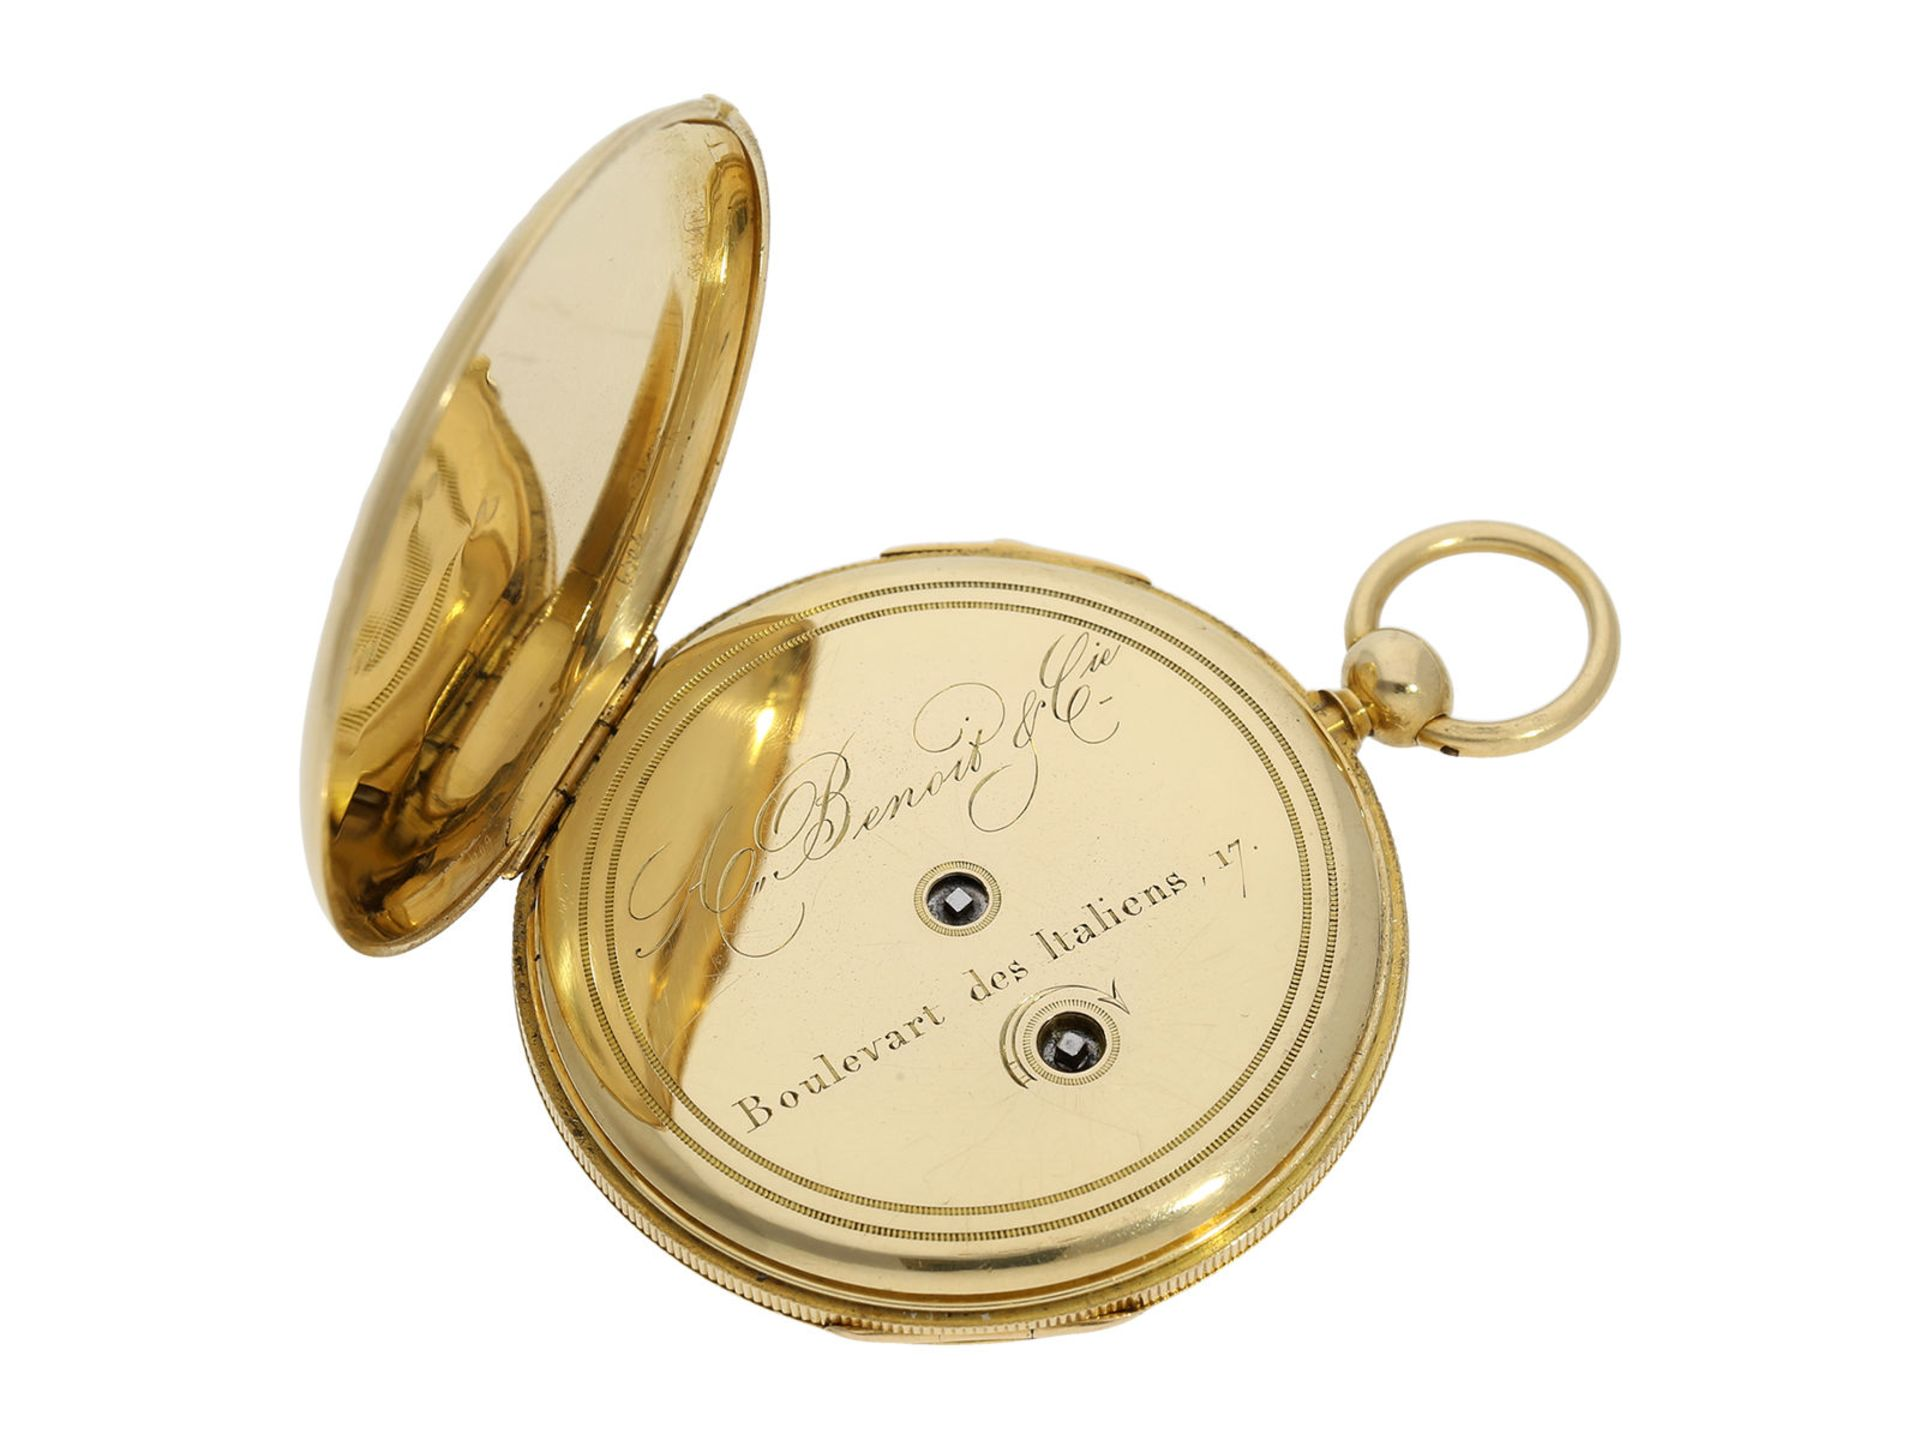 Pocket watch: early and small, very fine Lepine repeater, watchmaker from Breguet's circle, A. - Bild 5 aus 6